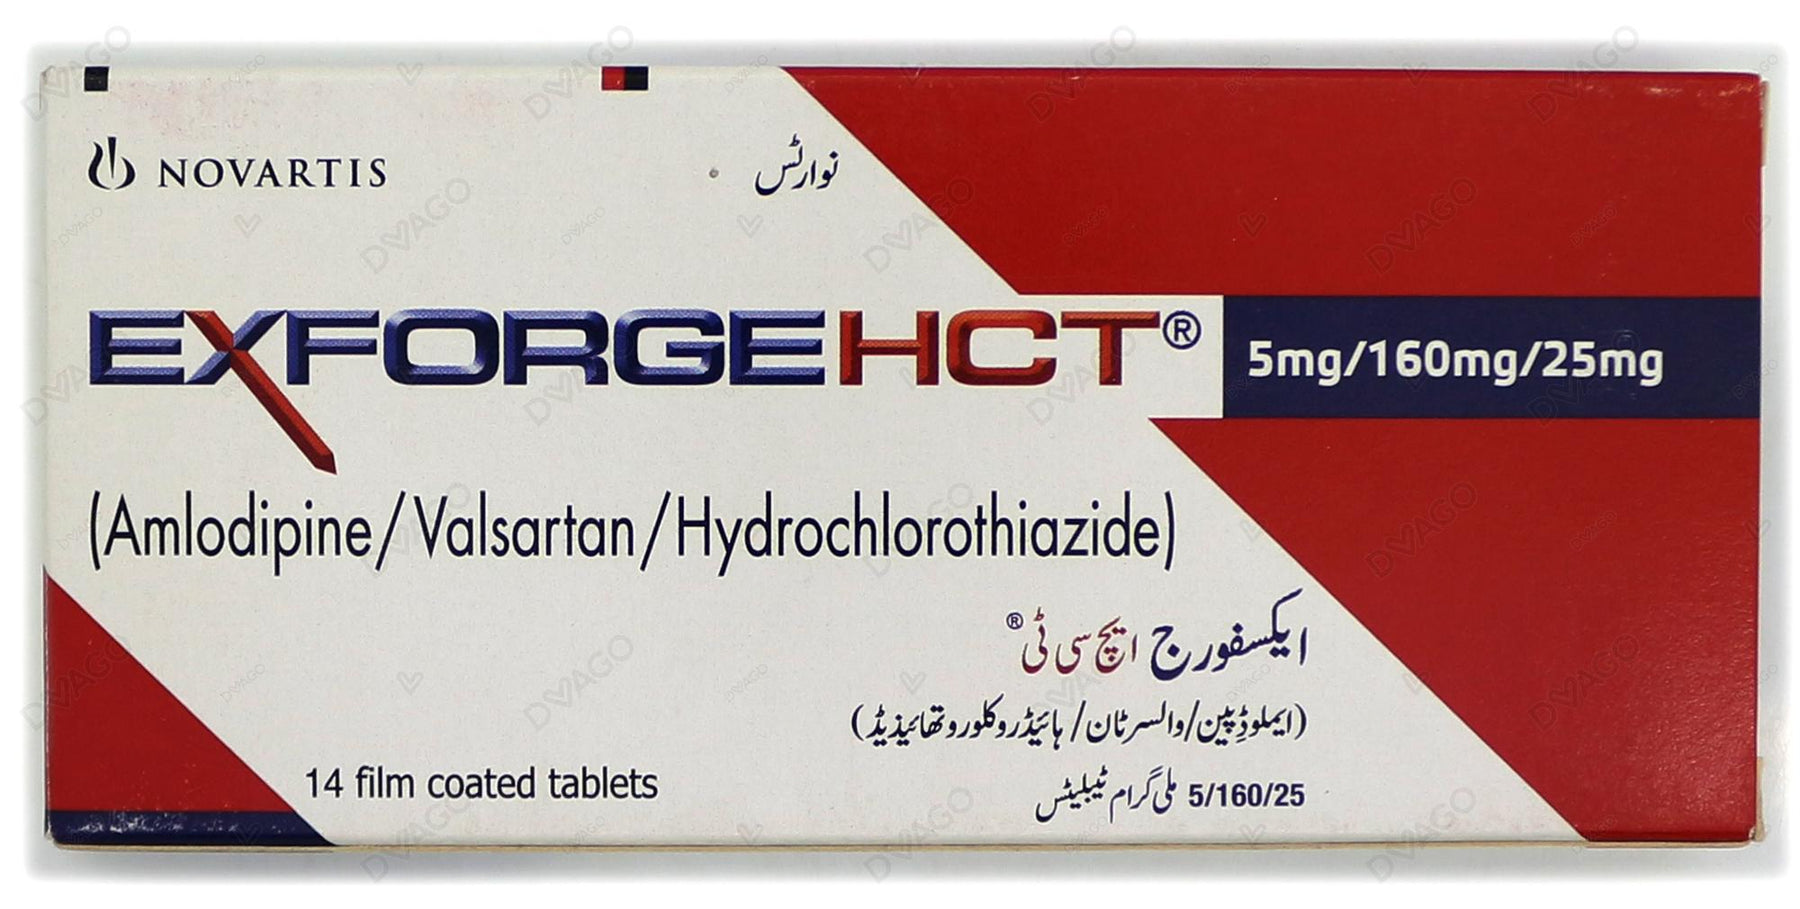 Exforge Hct Tablets 5/160/25mg 14's